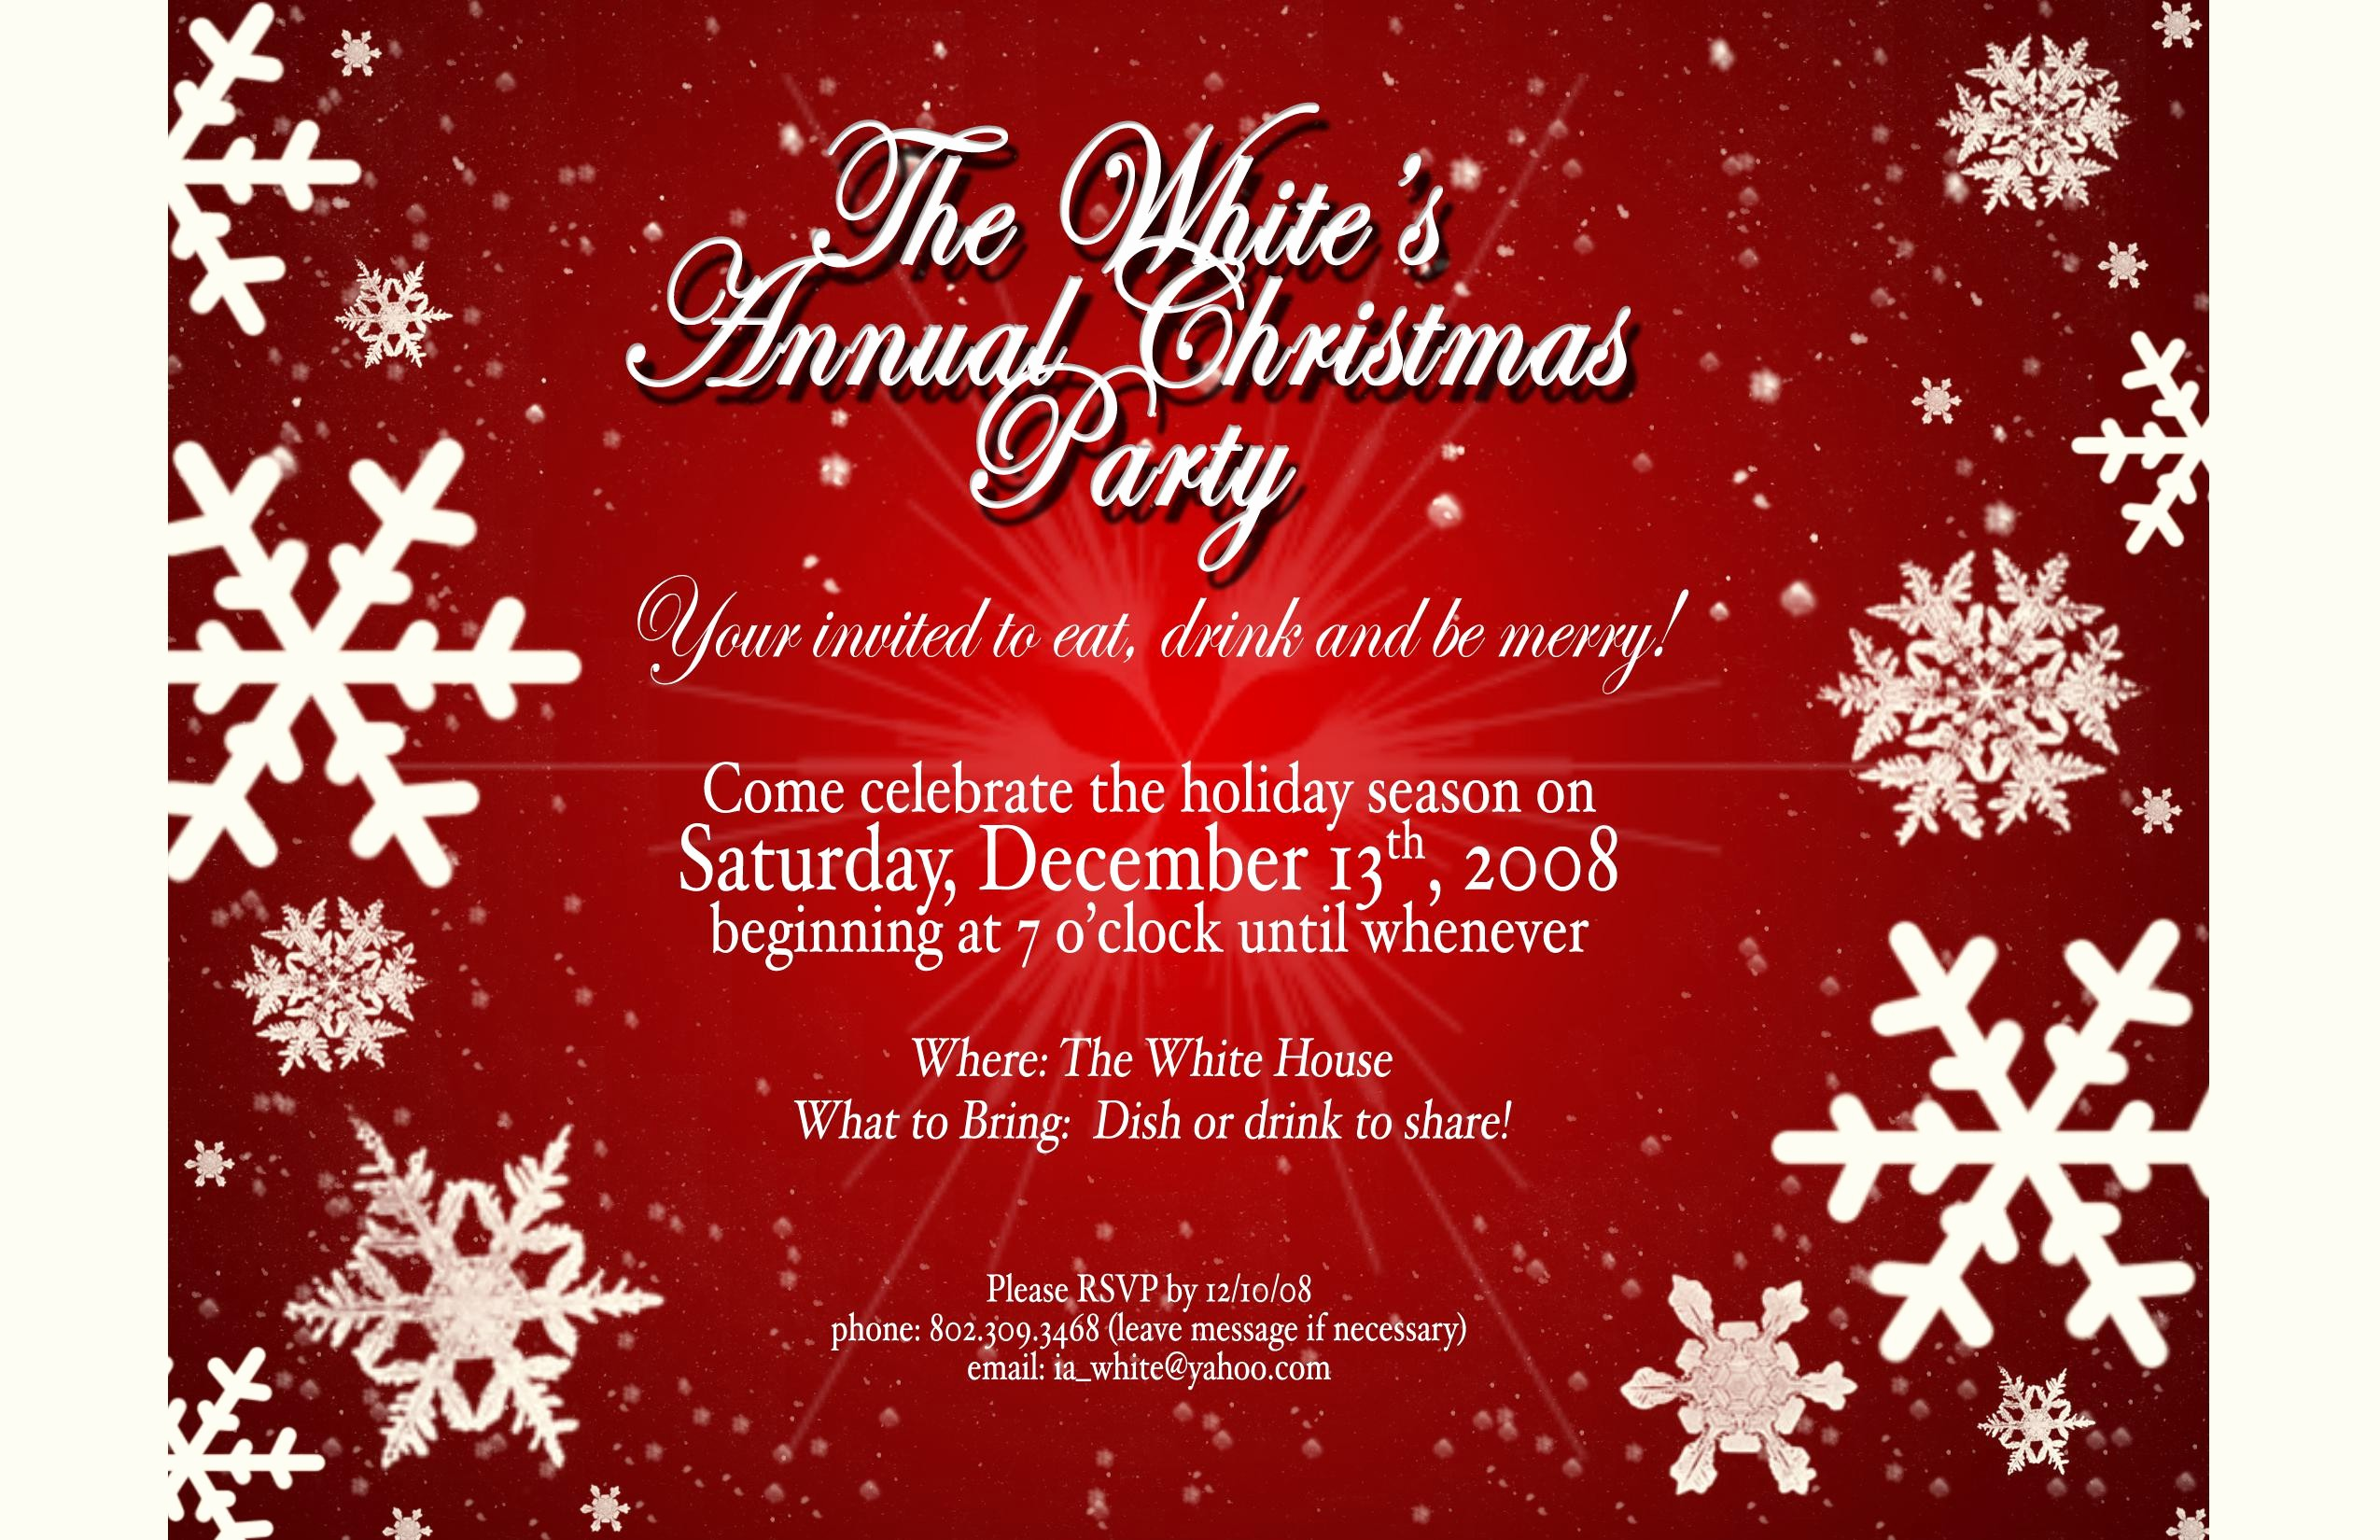 Free Online Christmas Party Invitations Luxury Christmas Party Invites